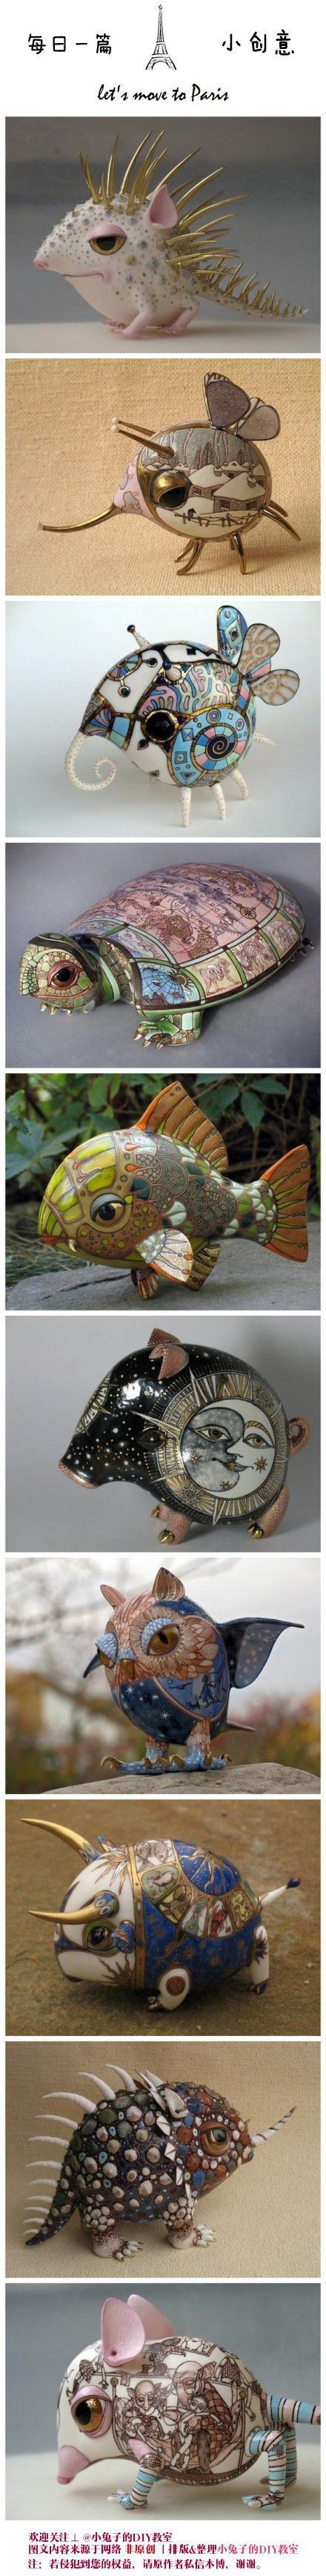 ceramic art from Russia: